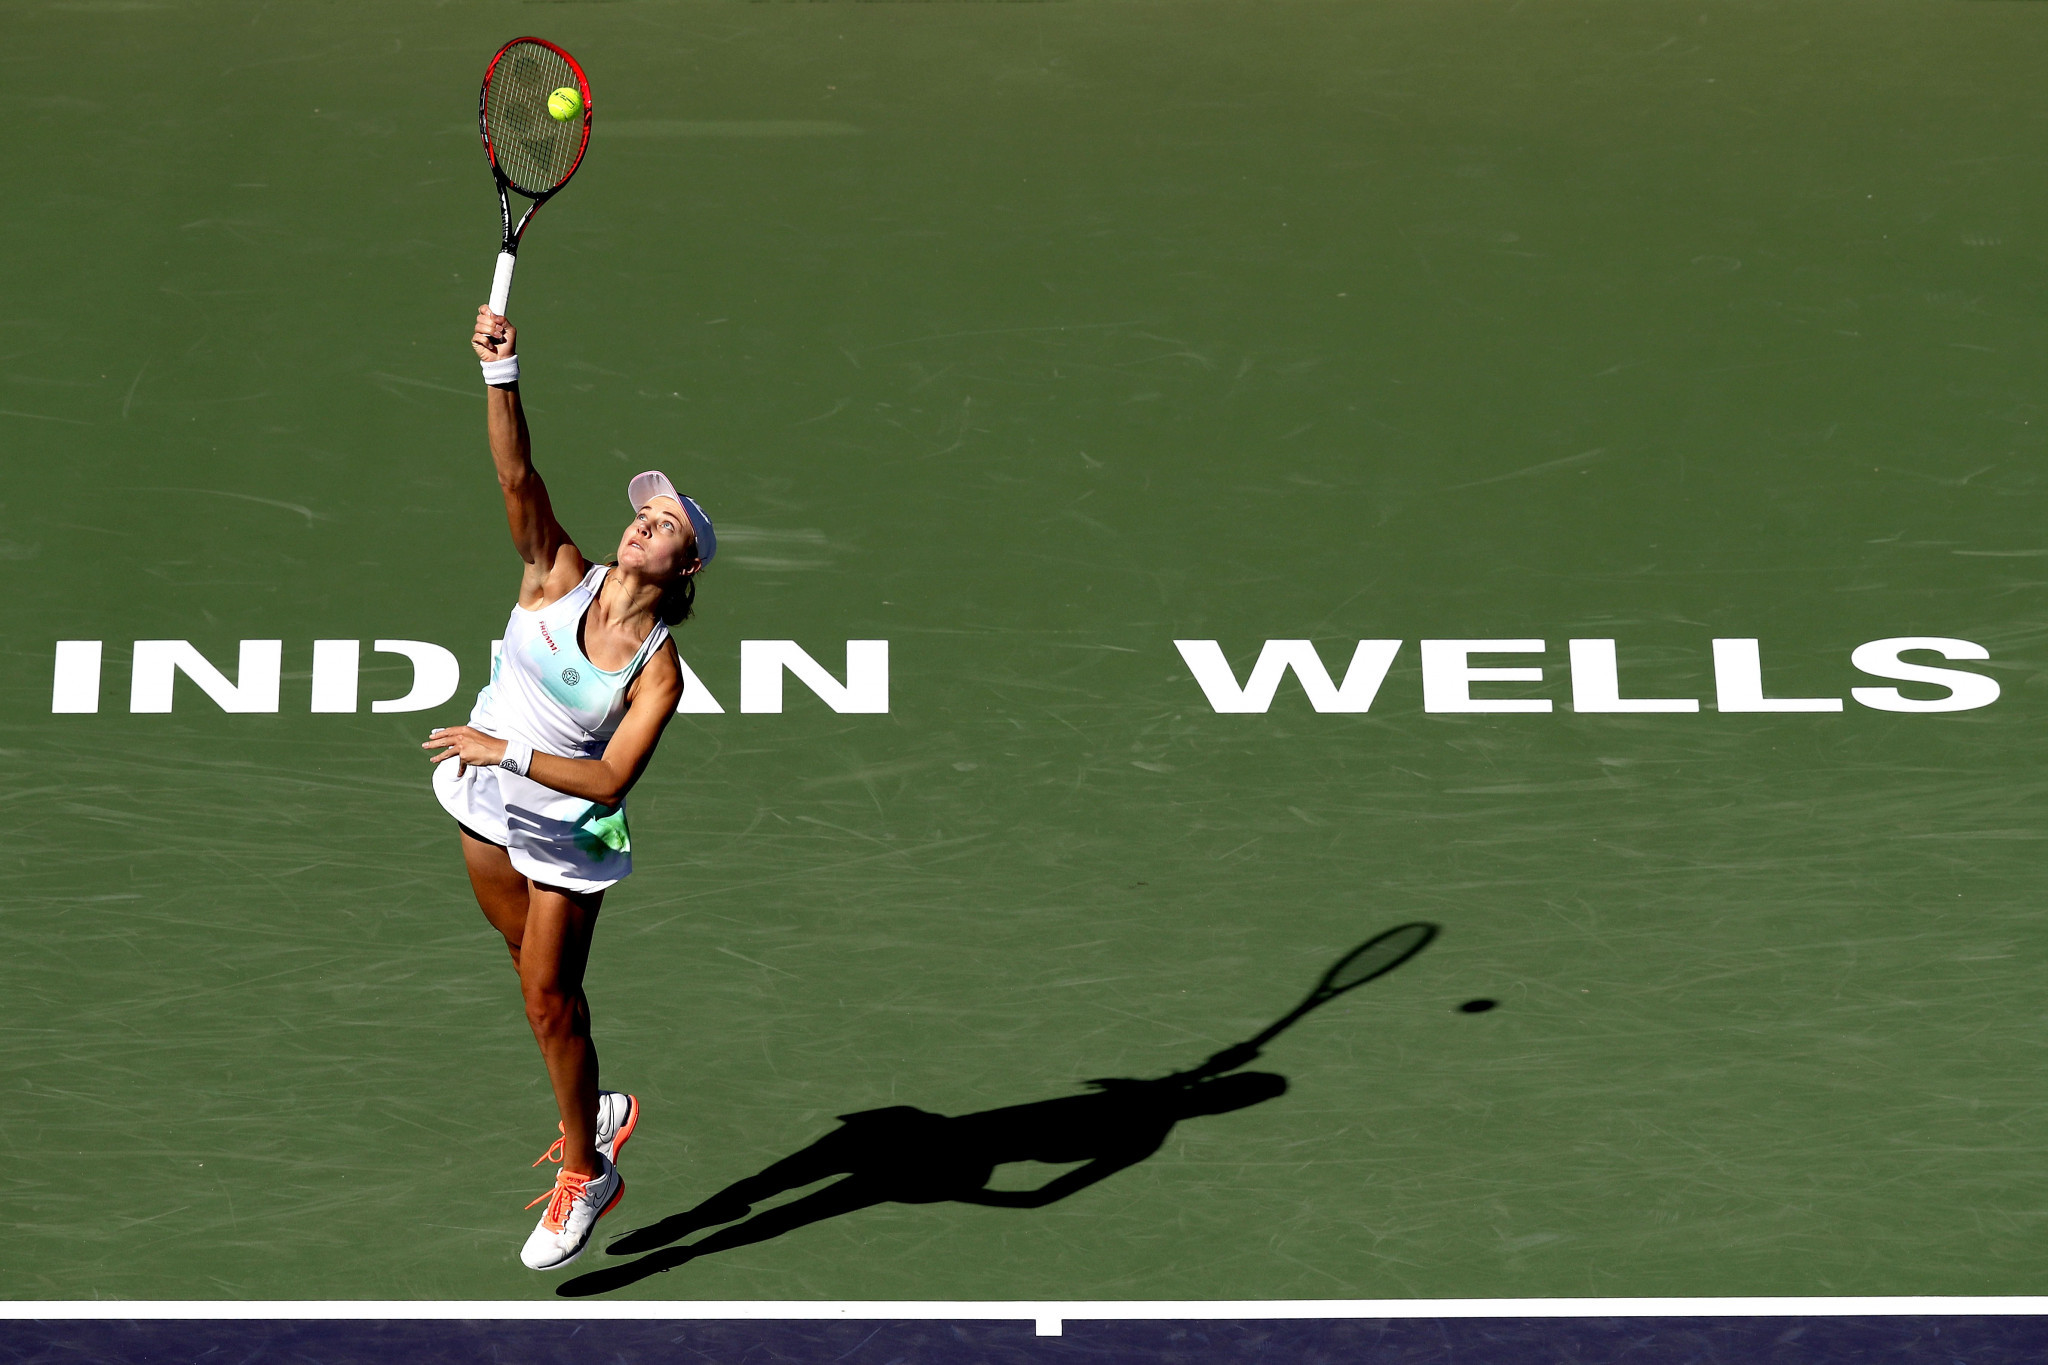 Stephens crashes out as Williams battles to victory over Azarenka at Indian Wells